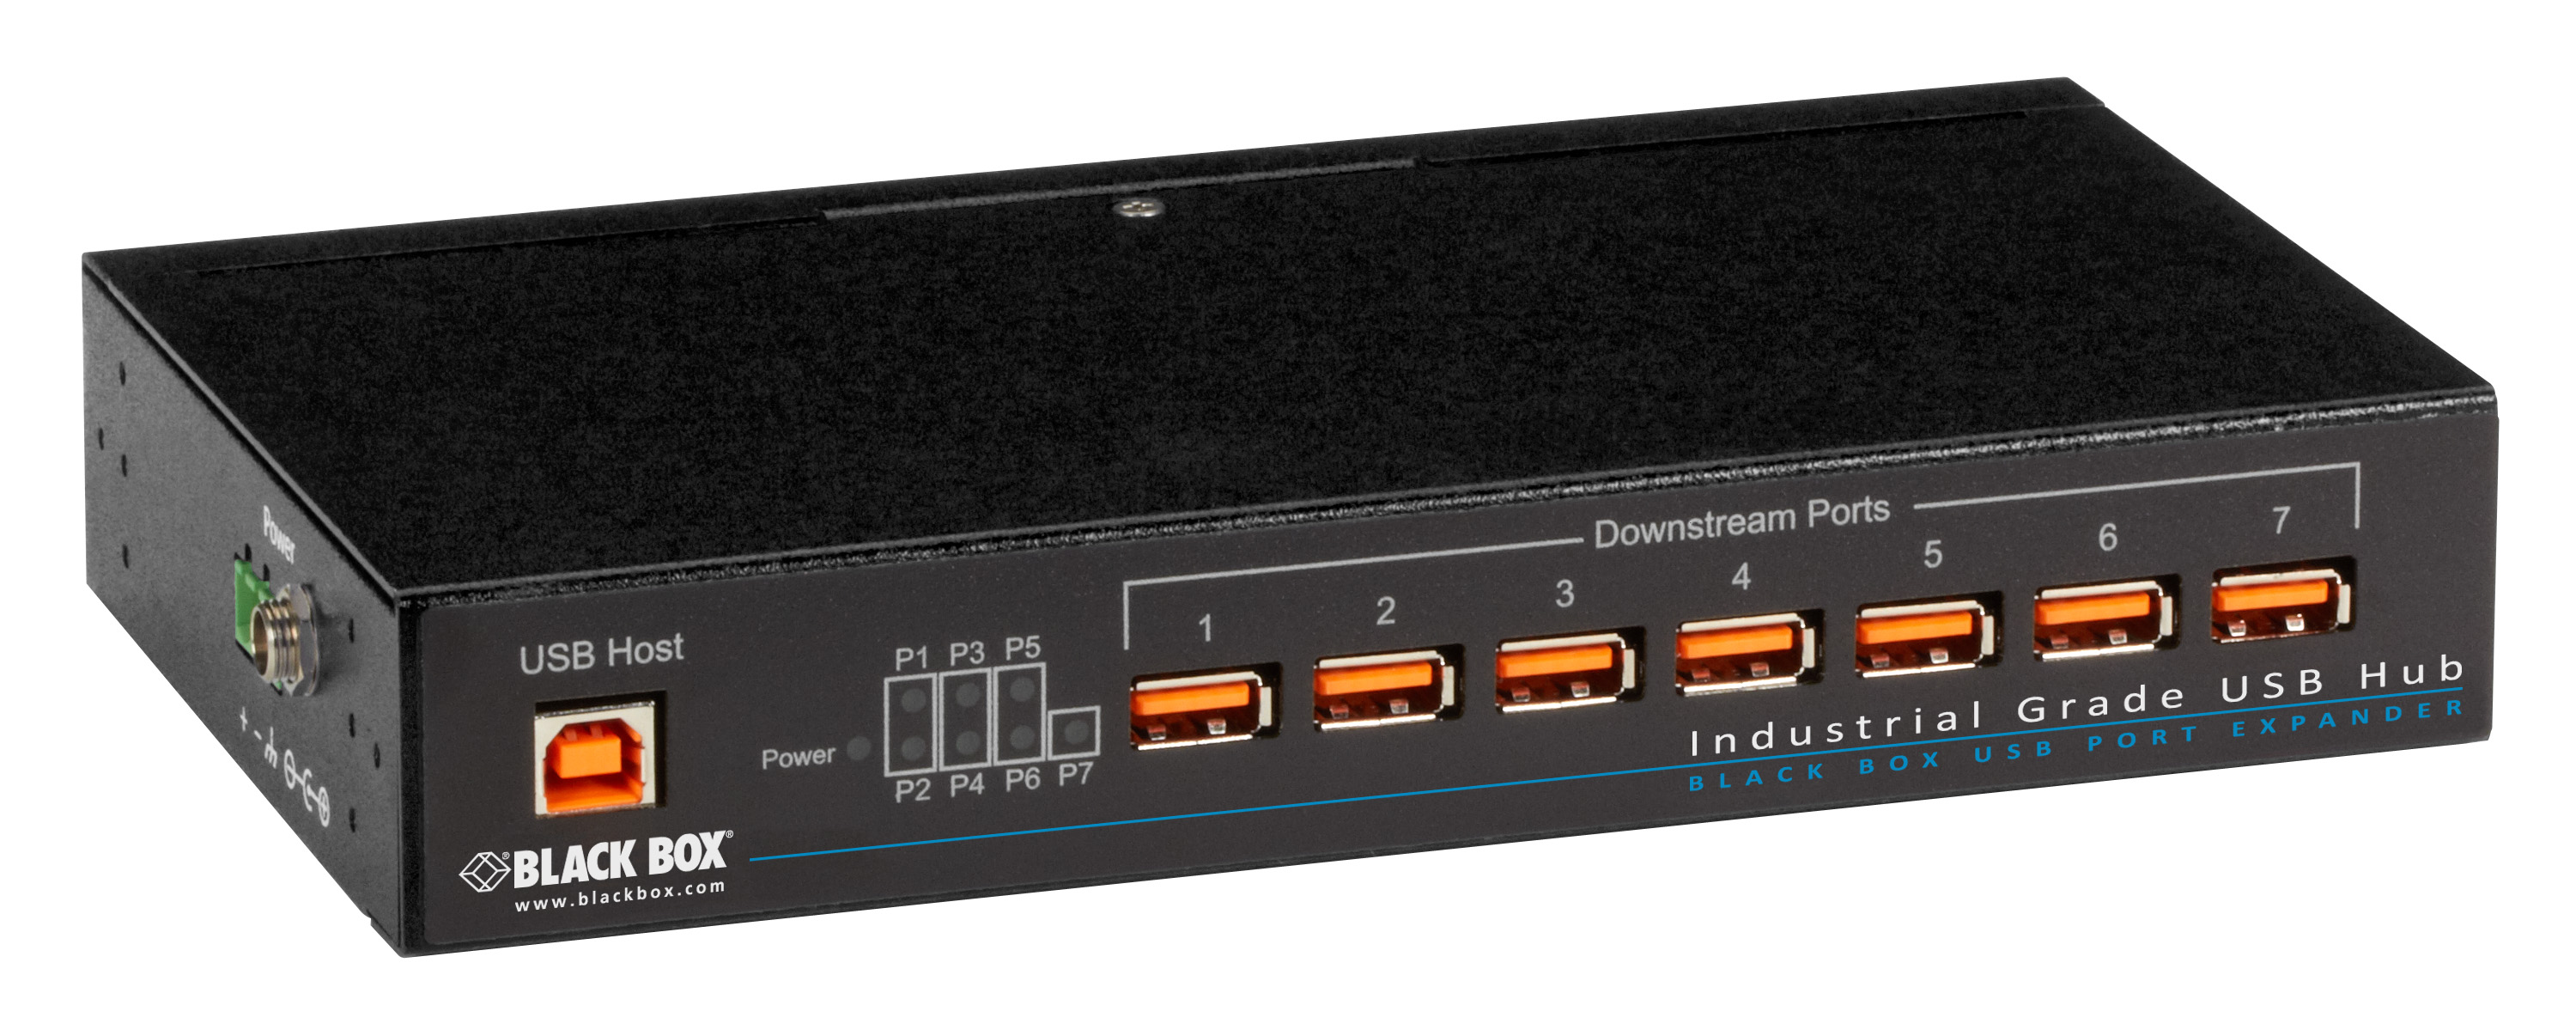 7 port USB 2.0 hub industrial